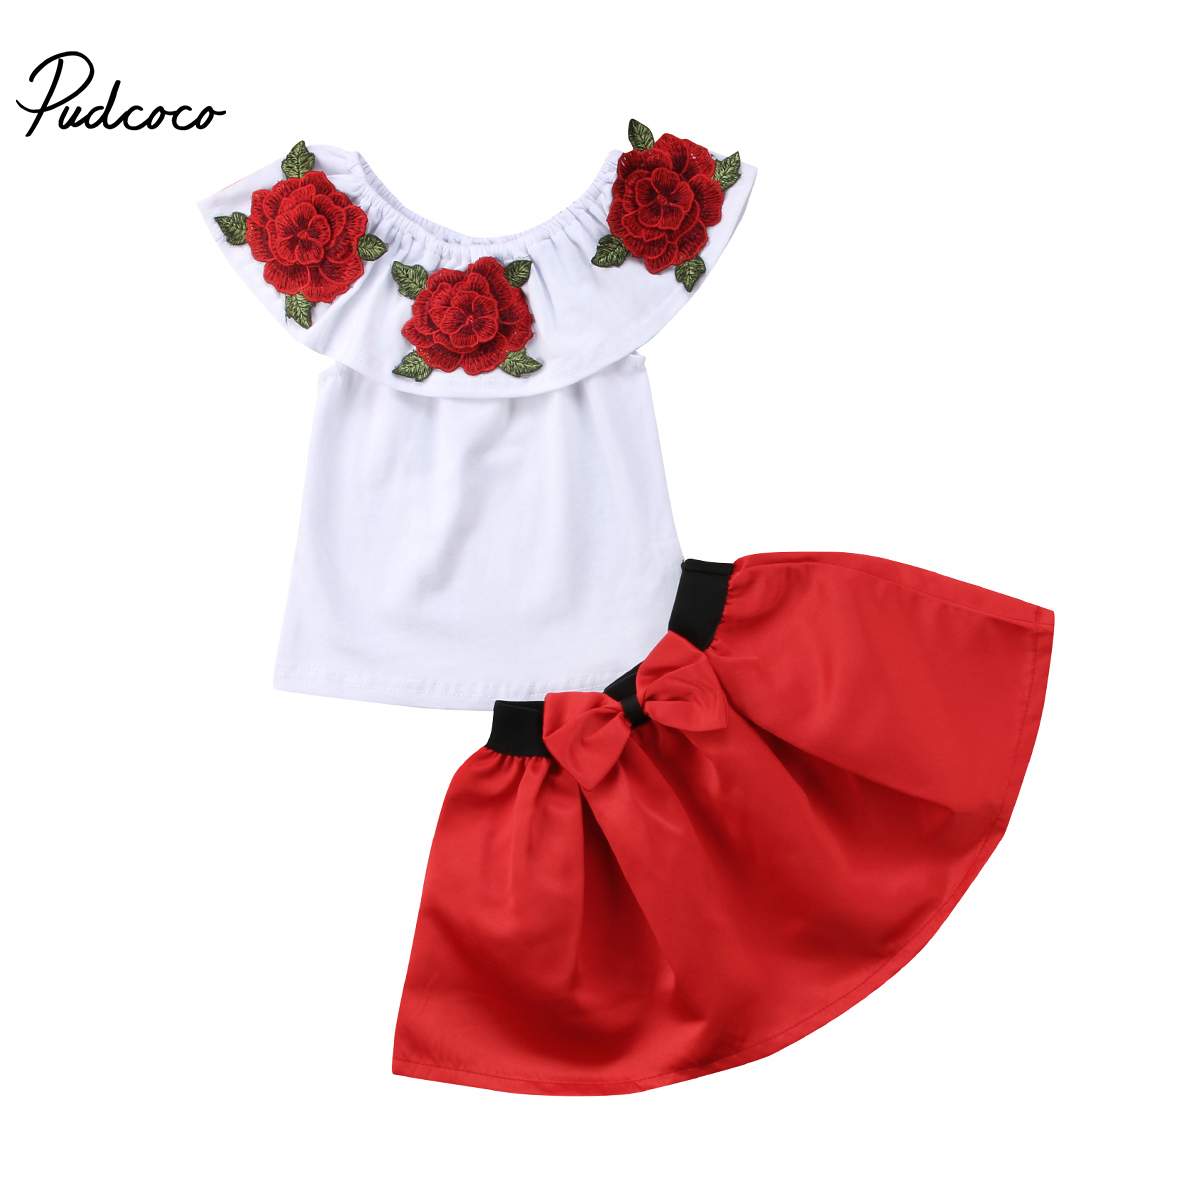 Summer Girls Clothes 2018 New Casual Children Clothing Sets Short SleeveShirts Skirt Kids Suit for Girls 2 3 4 5 6 7  Years fashion baby girls clothing sets new summer 2017 sleeveless tops tees lace skirt 2 pcs suit casual children pullover clothes